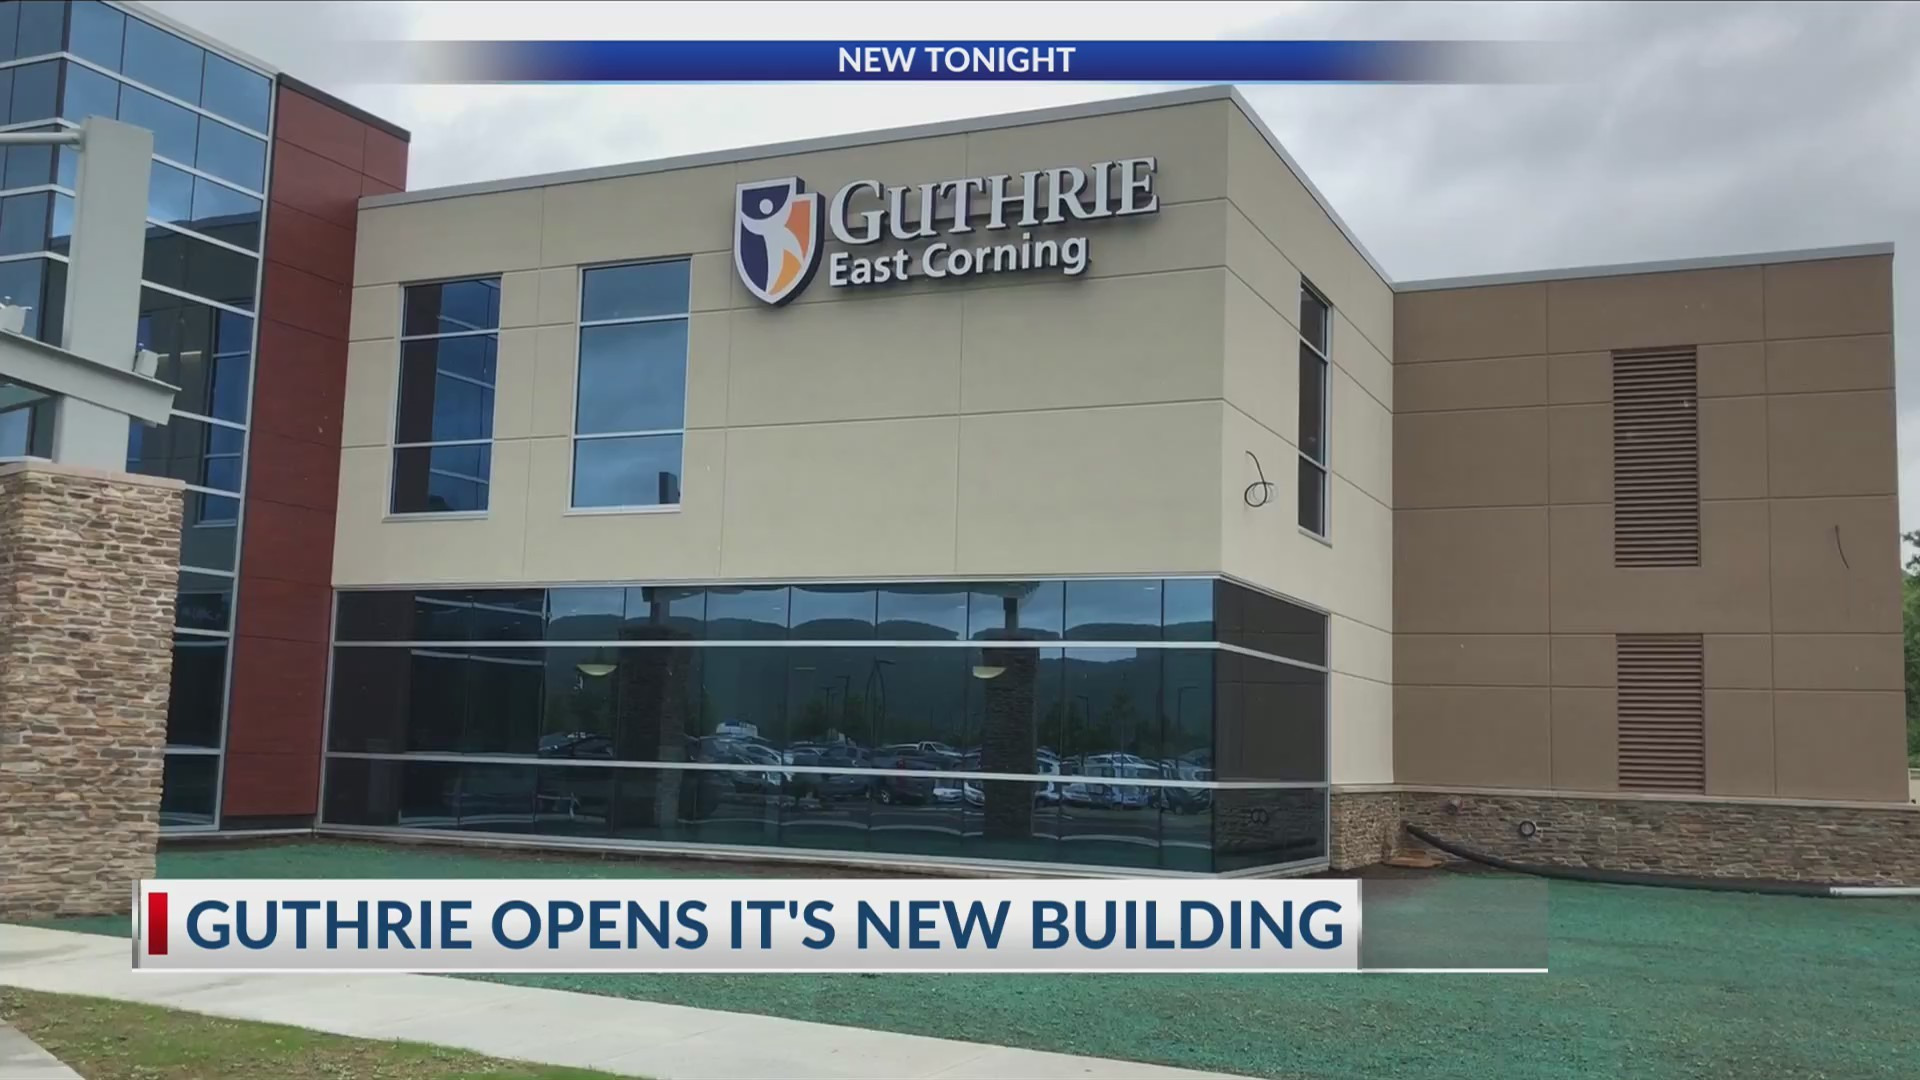 Guthrie Opens New Building